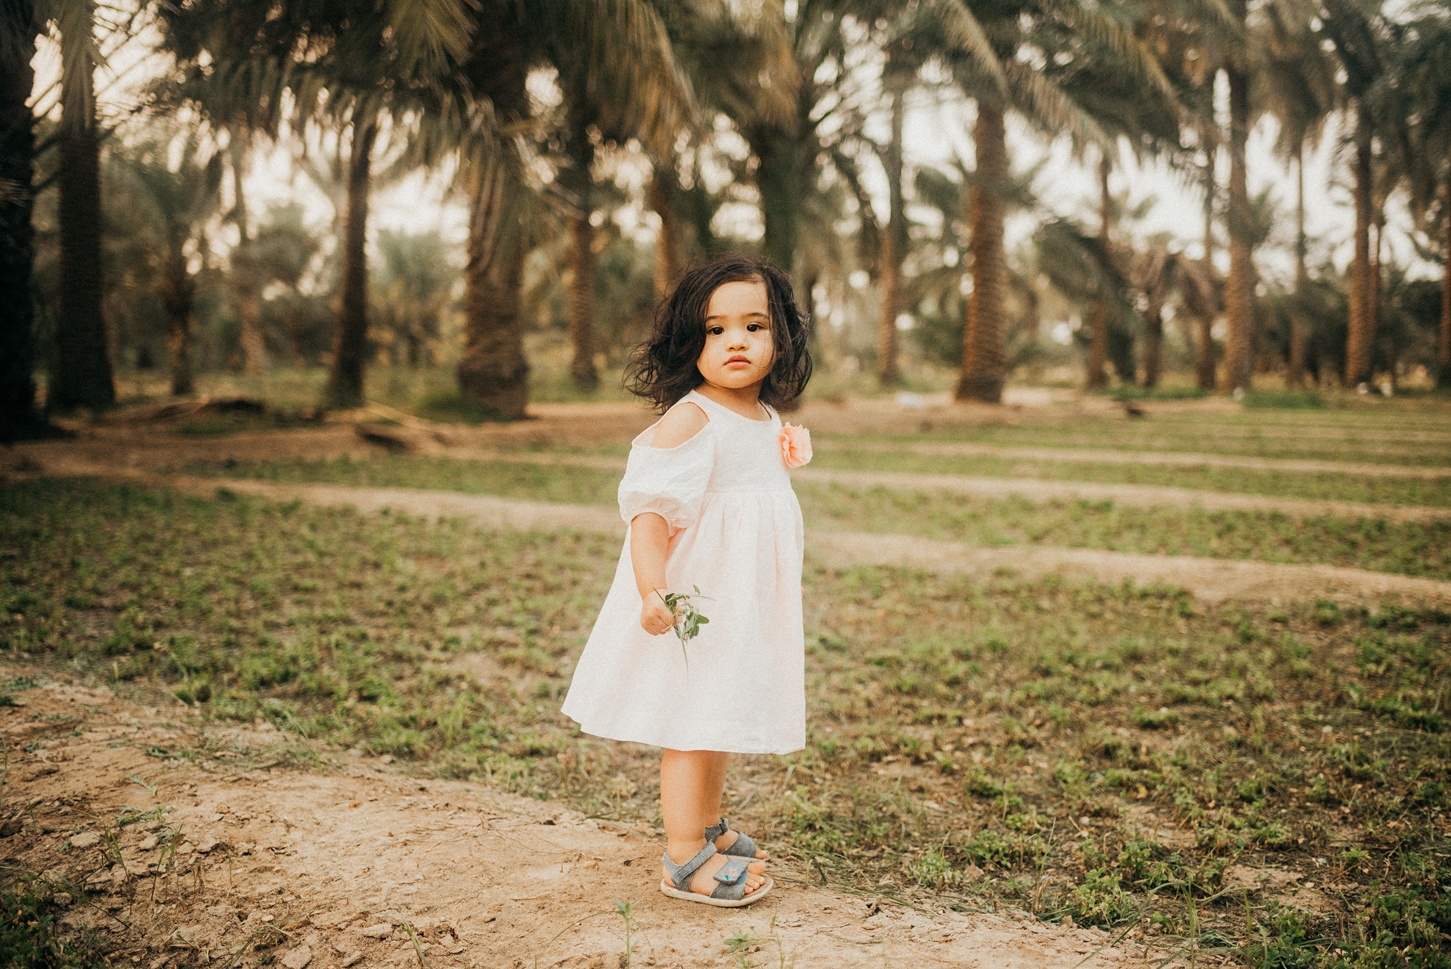 Royal Camel Farm Lifestyle Family Photography Session Bahrain Portrait